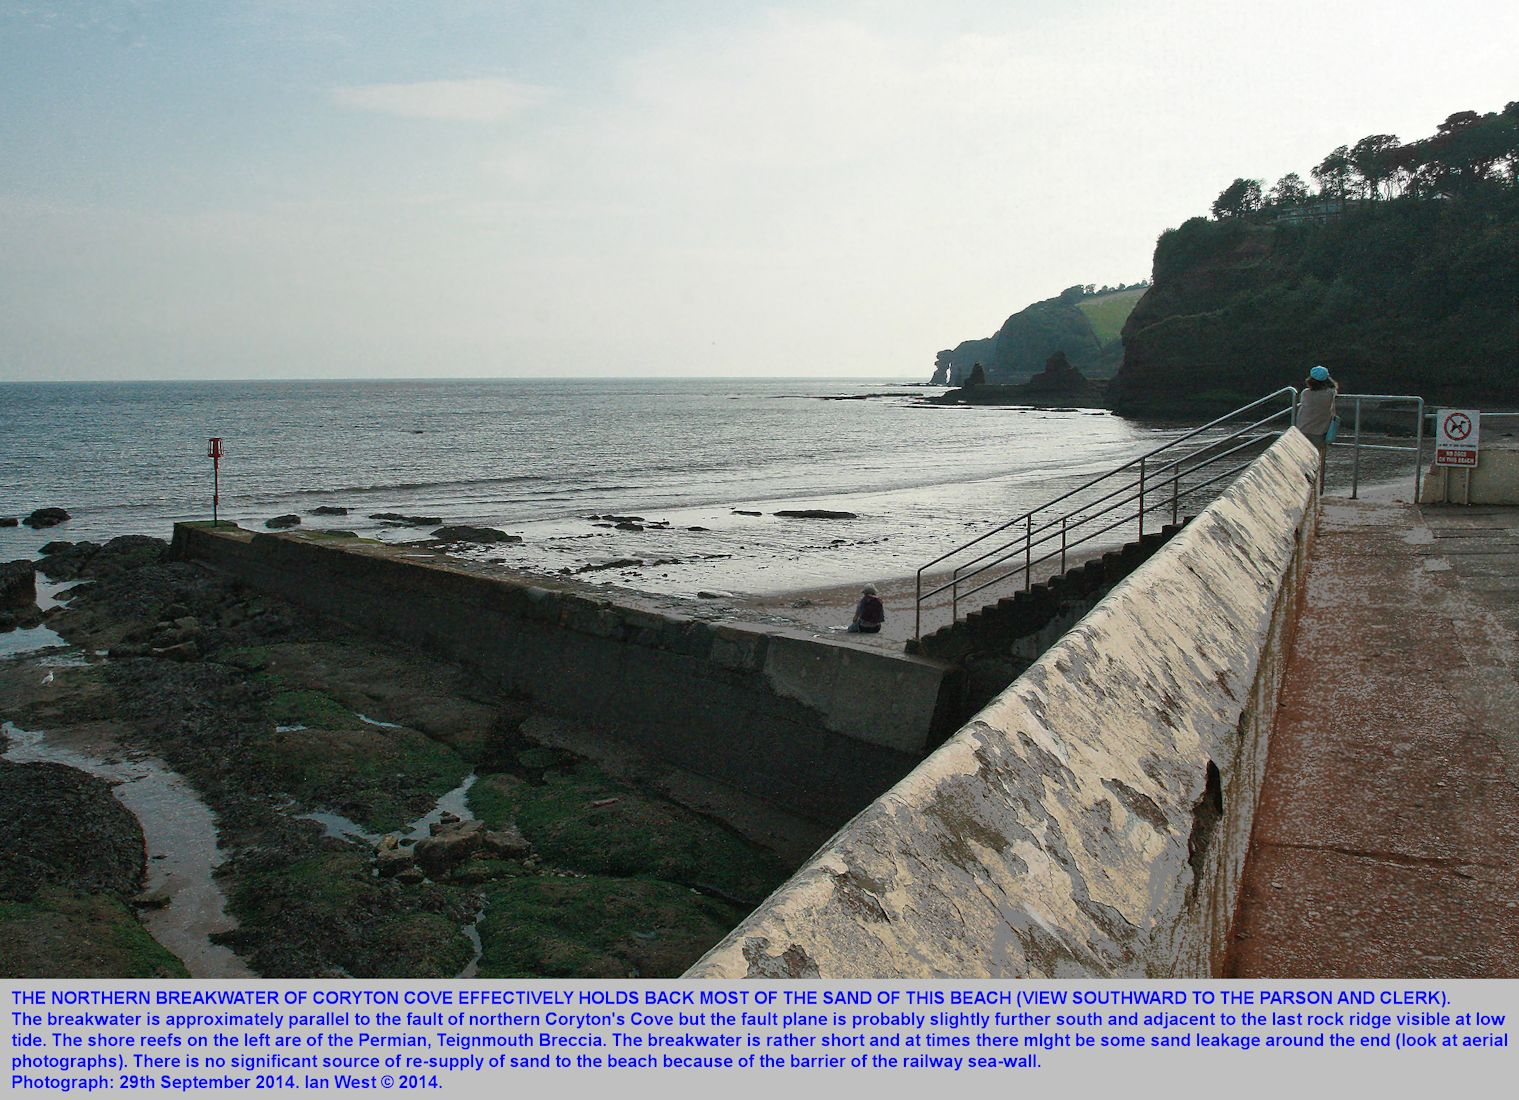 The northern breakwater of Coryton's Cove, Dawlish, Devon, holding back beach sand, low tide, 29th September 2014